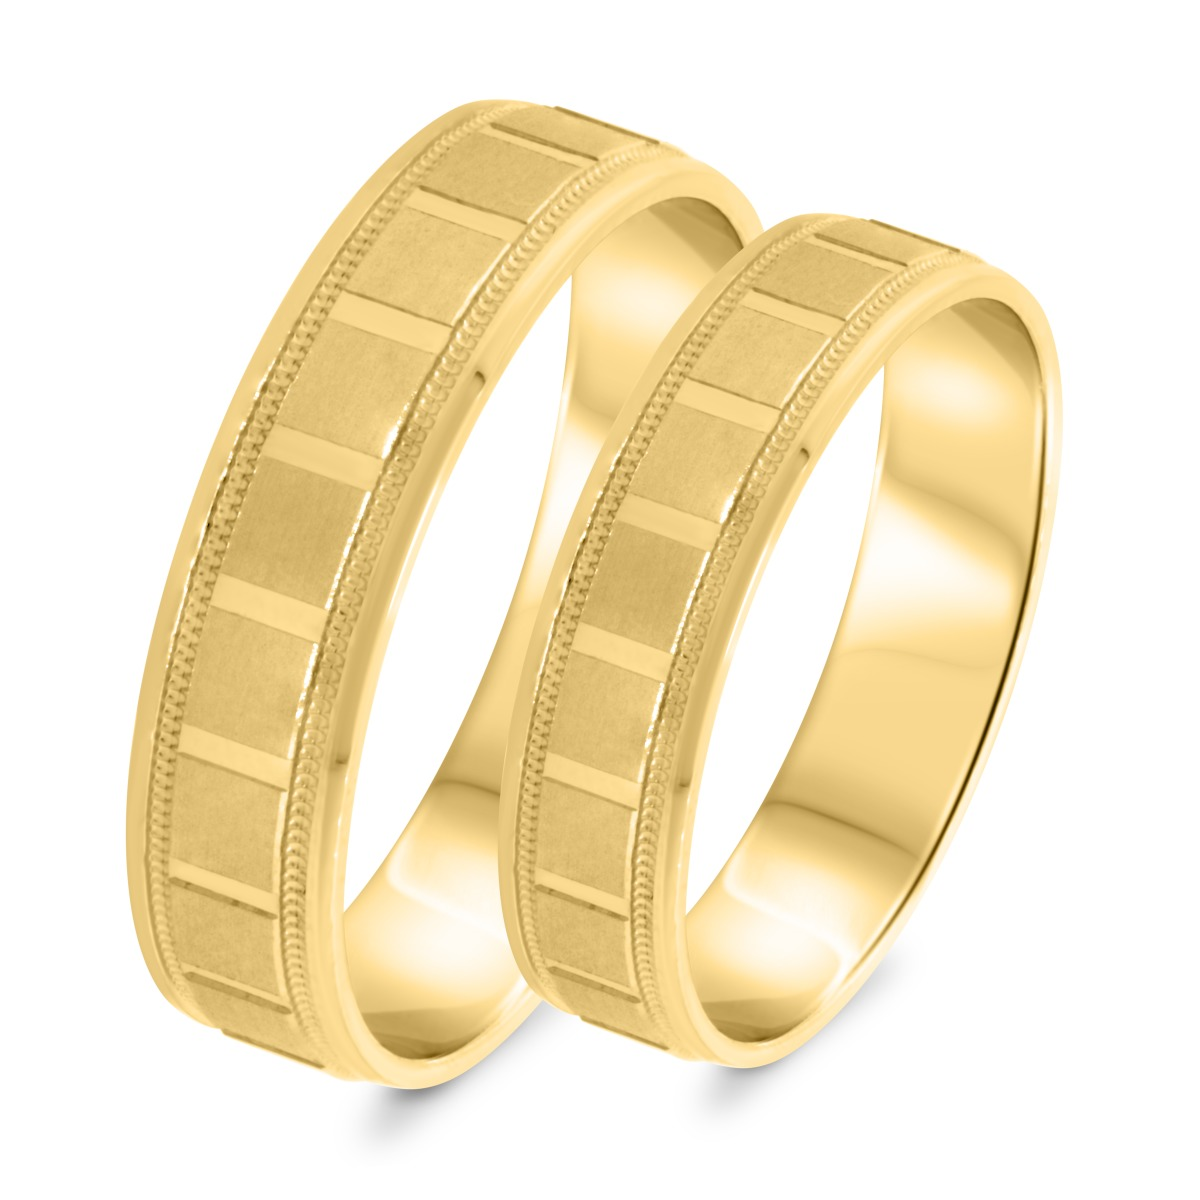 Matching Wedding Band Set 10K Yellow Gold